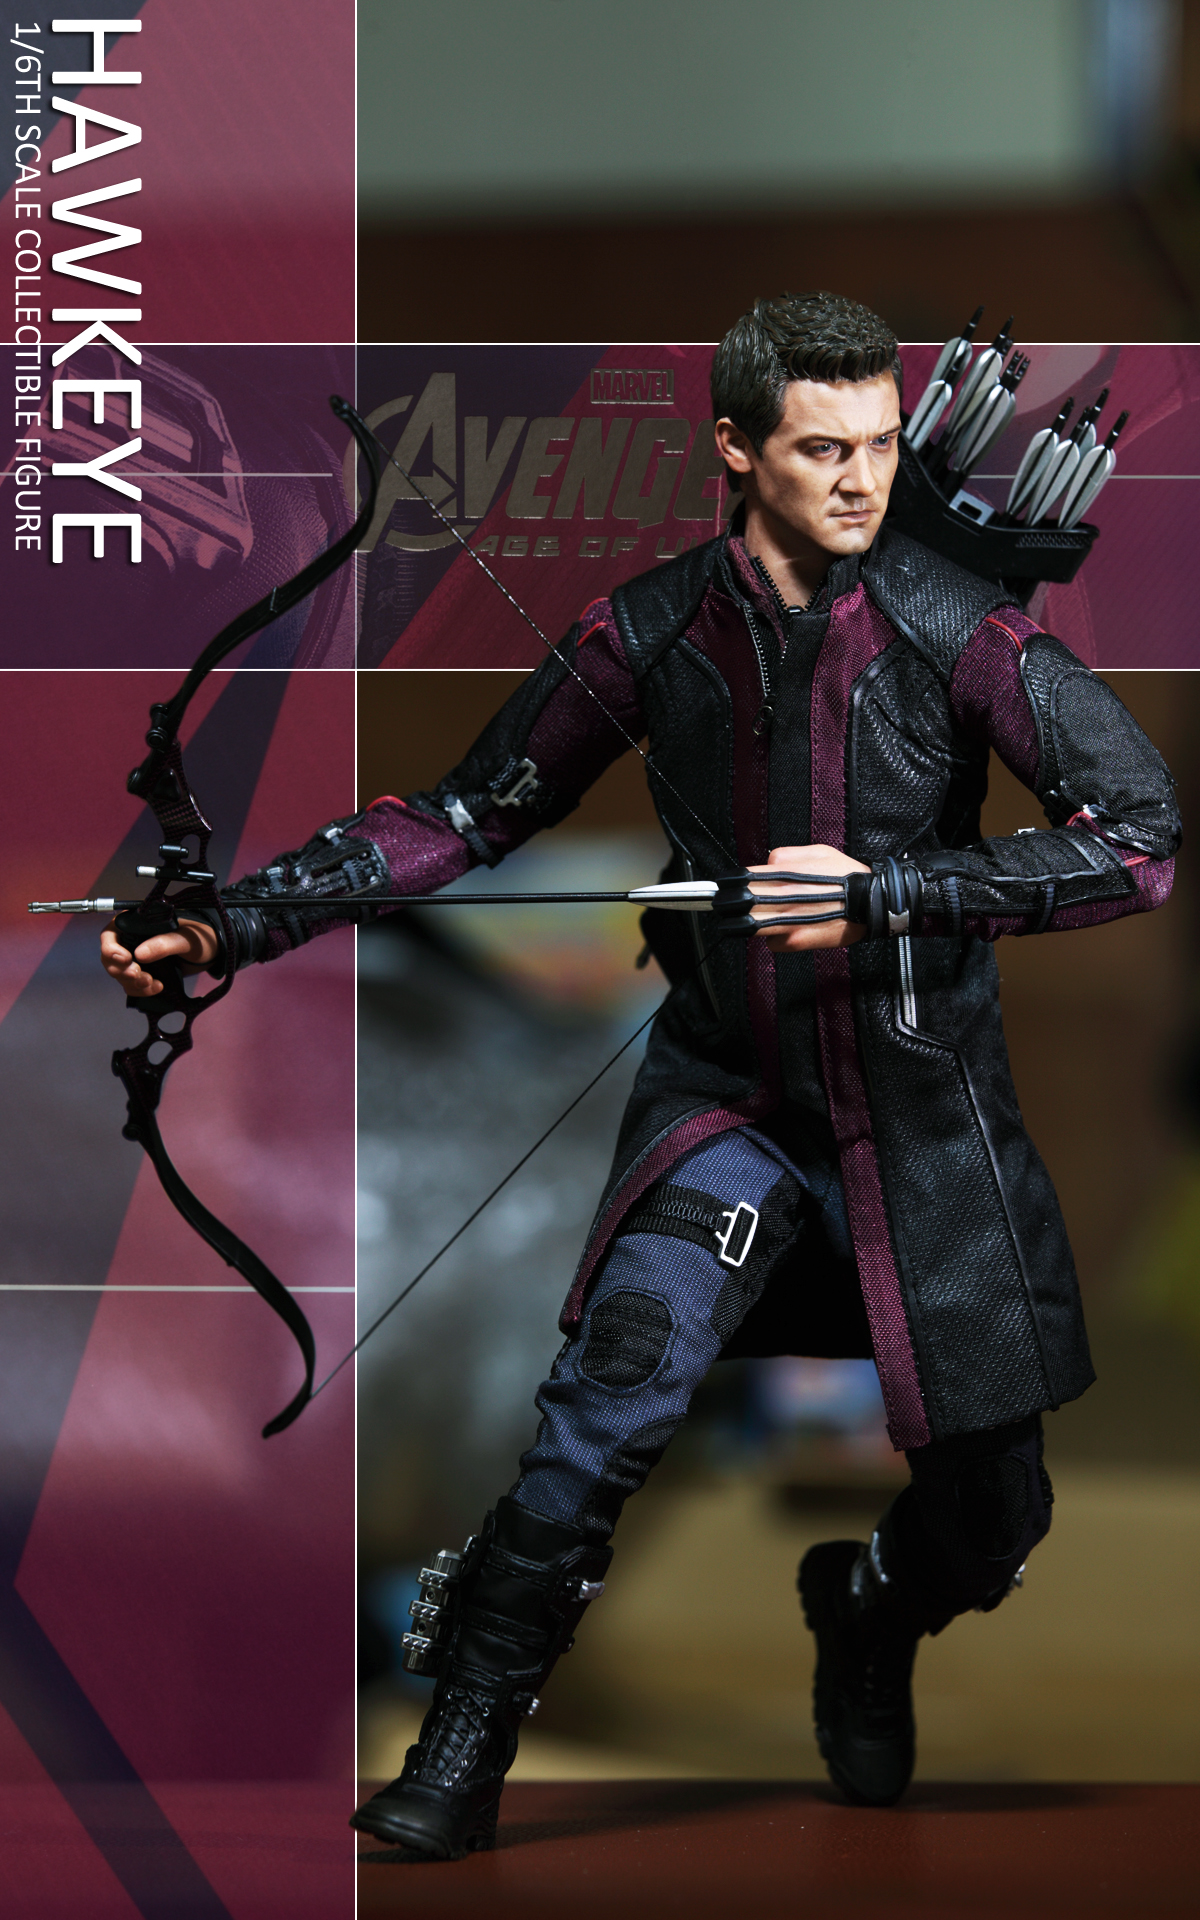 hottoys-avengers-age-of-ultron-hawkeye-picture04